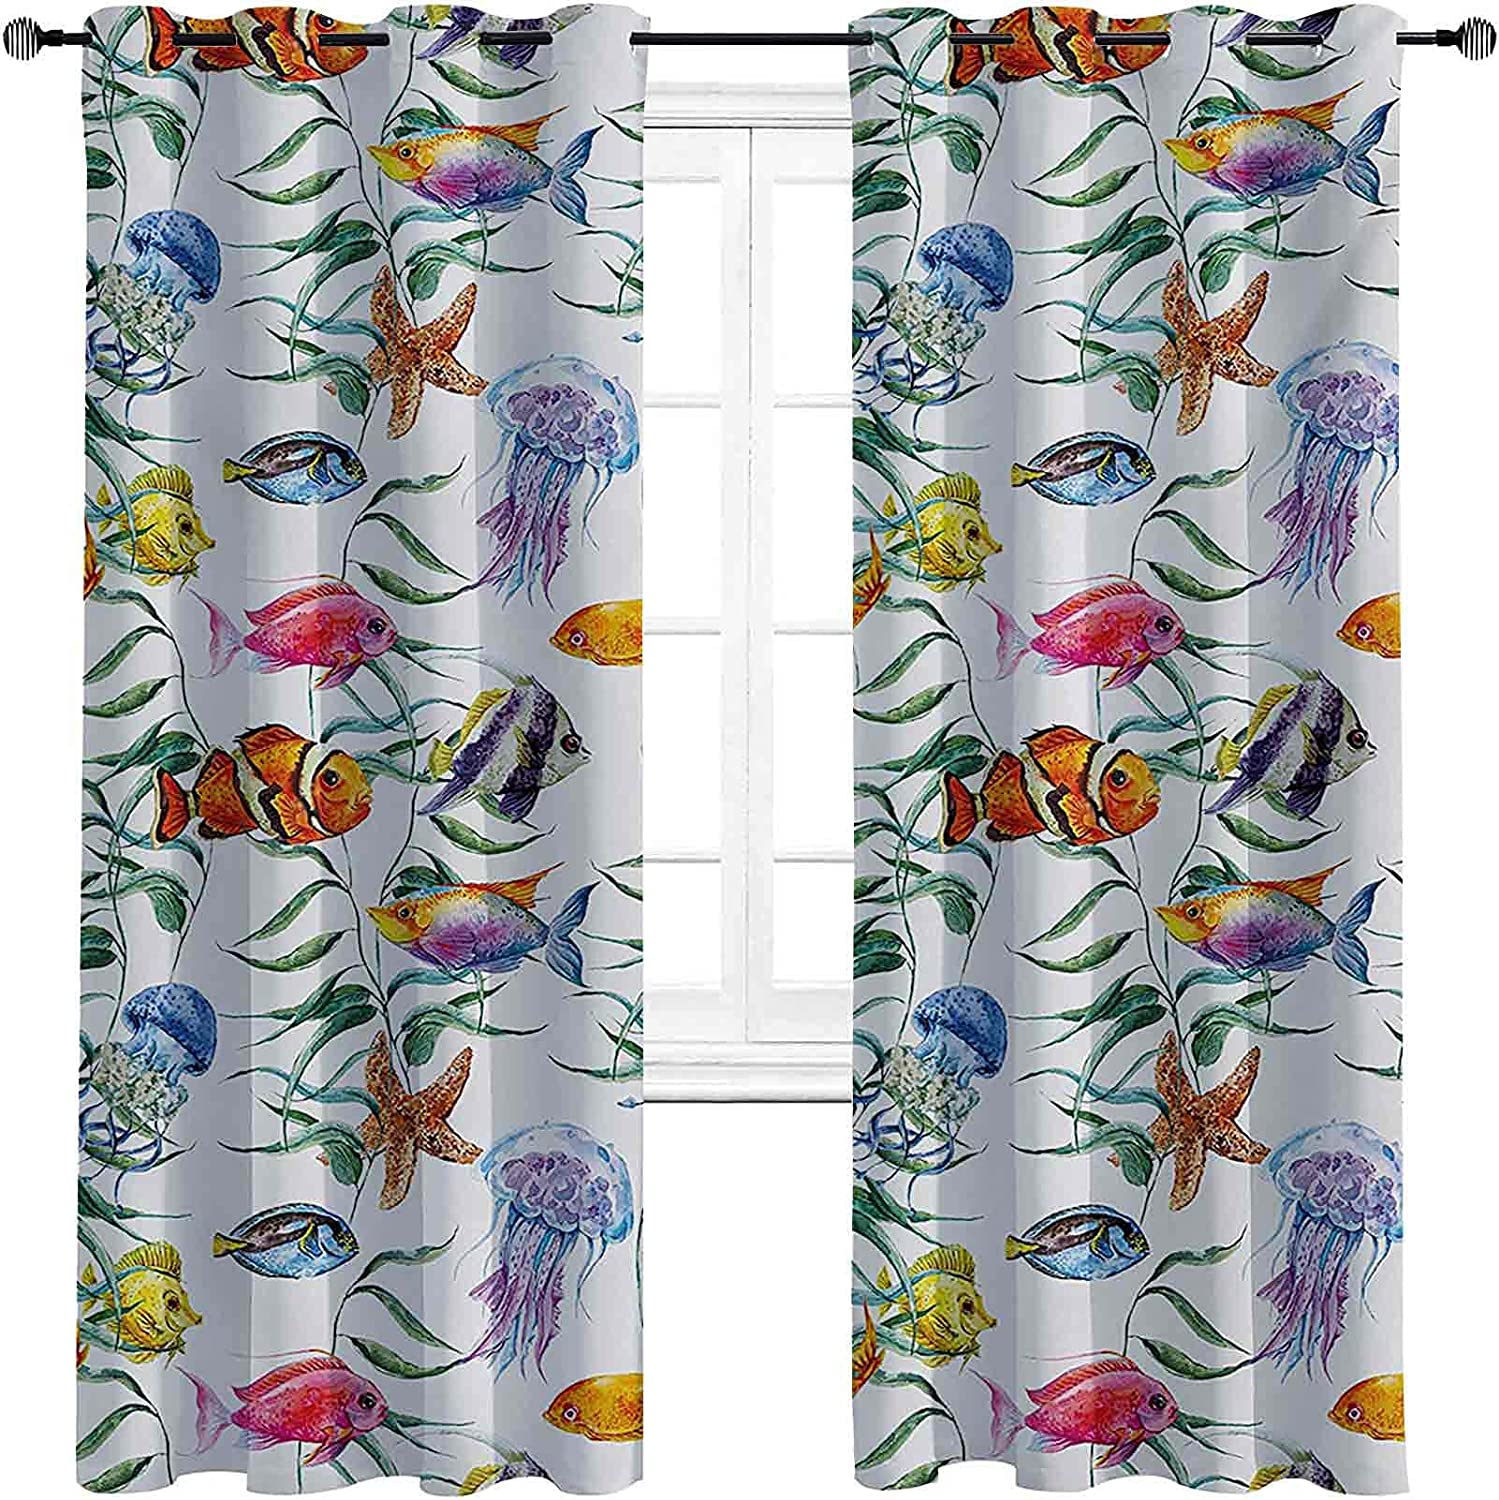 Max 61% OFF with Grommets blackoutJellyfish Ranking TOP5 Curtain Coral Reef Tropical wit